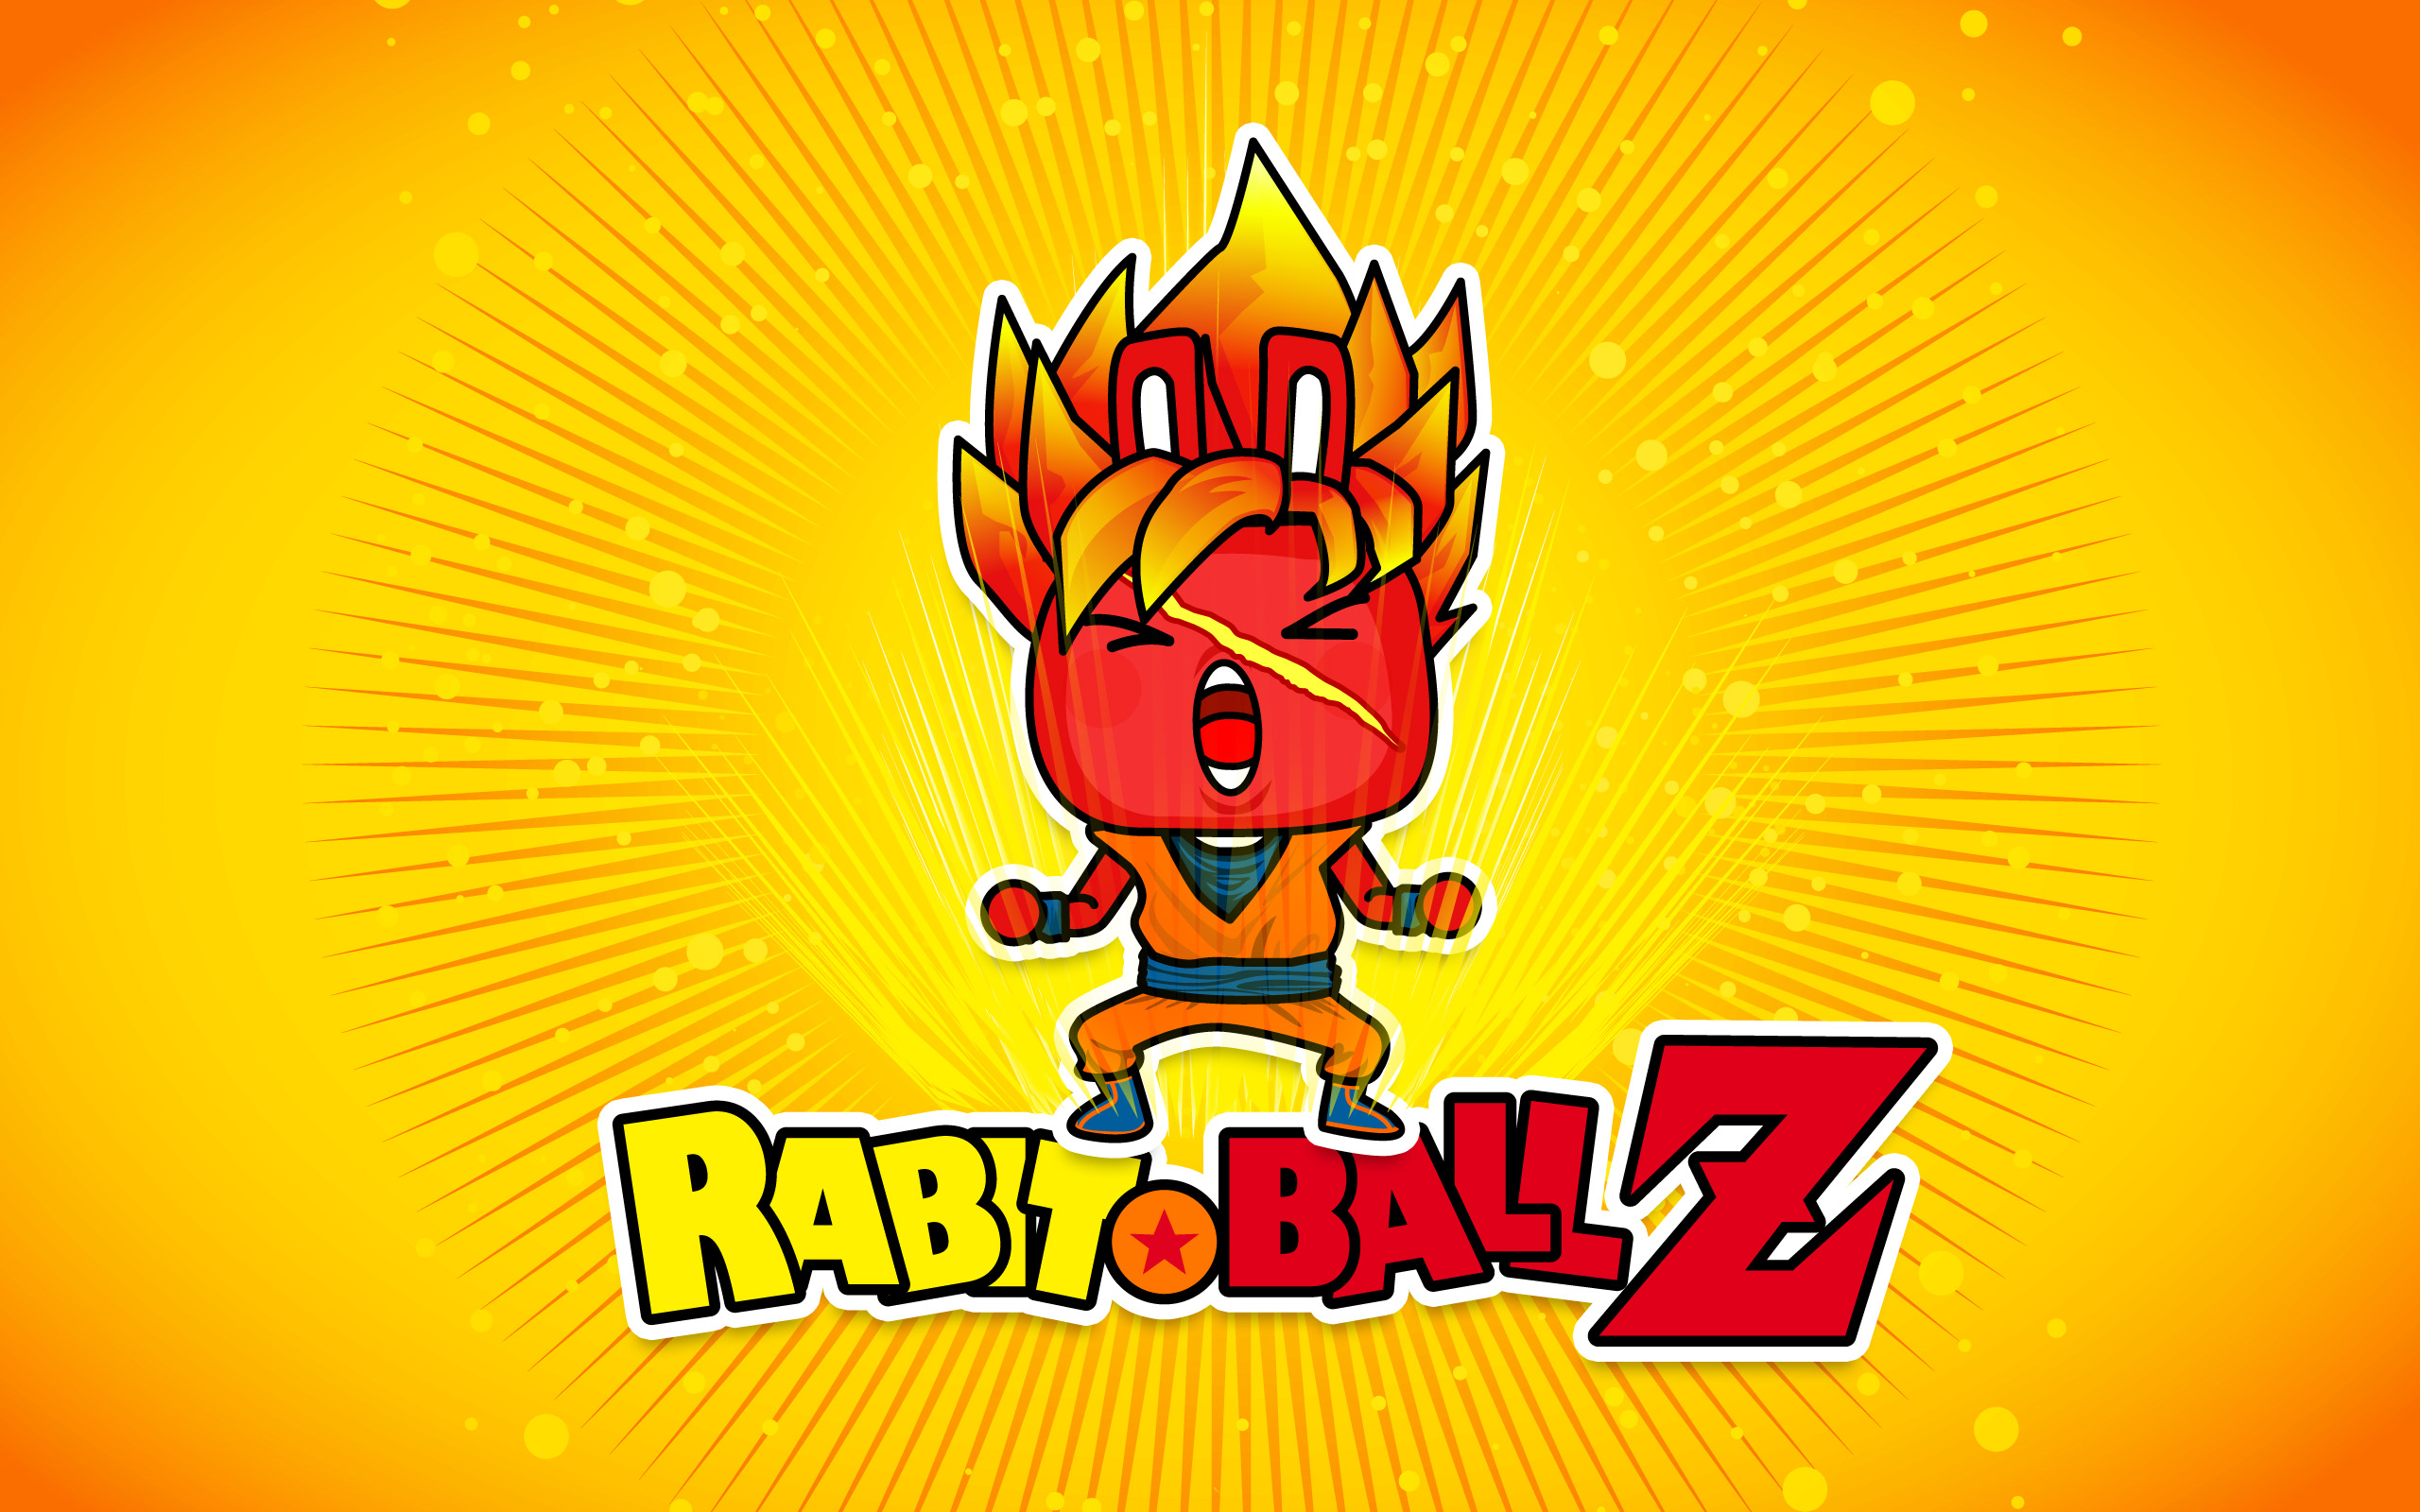 Dragon Ball Z Iphone Wallpaper Dragon Ball Z Wallpapers Pictures Images